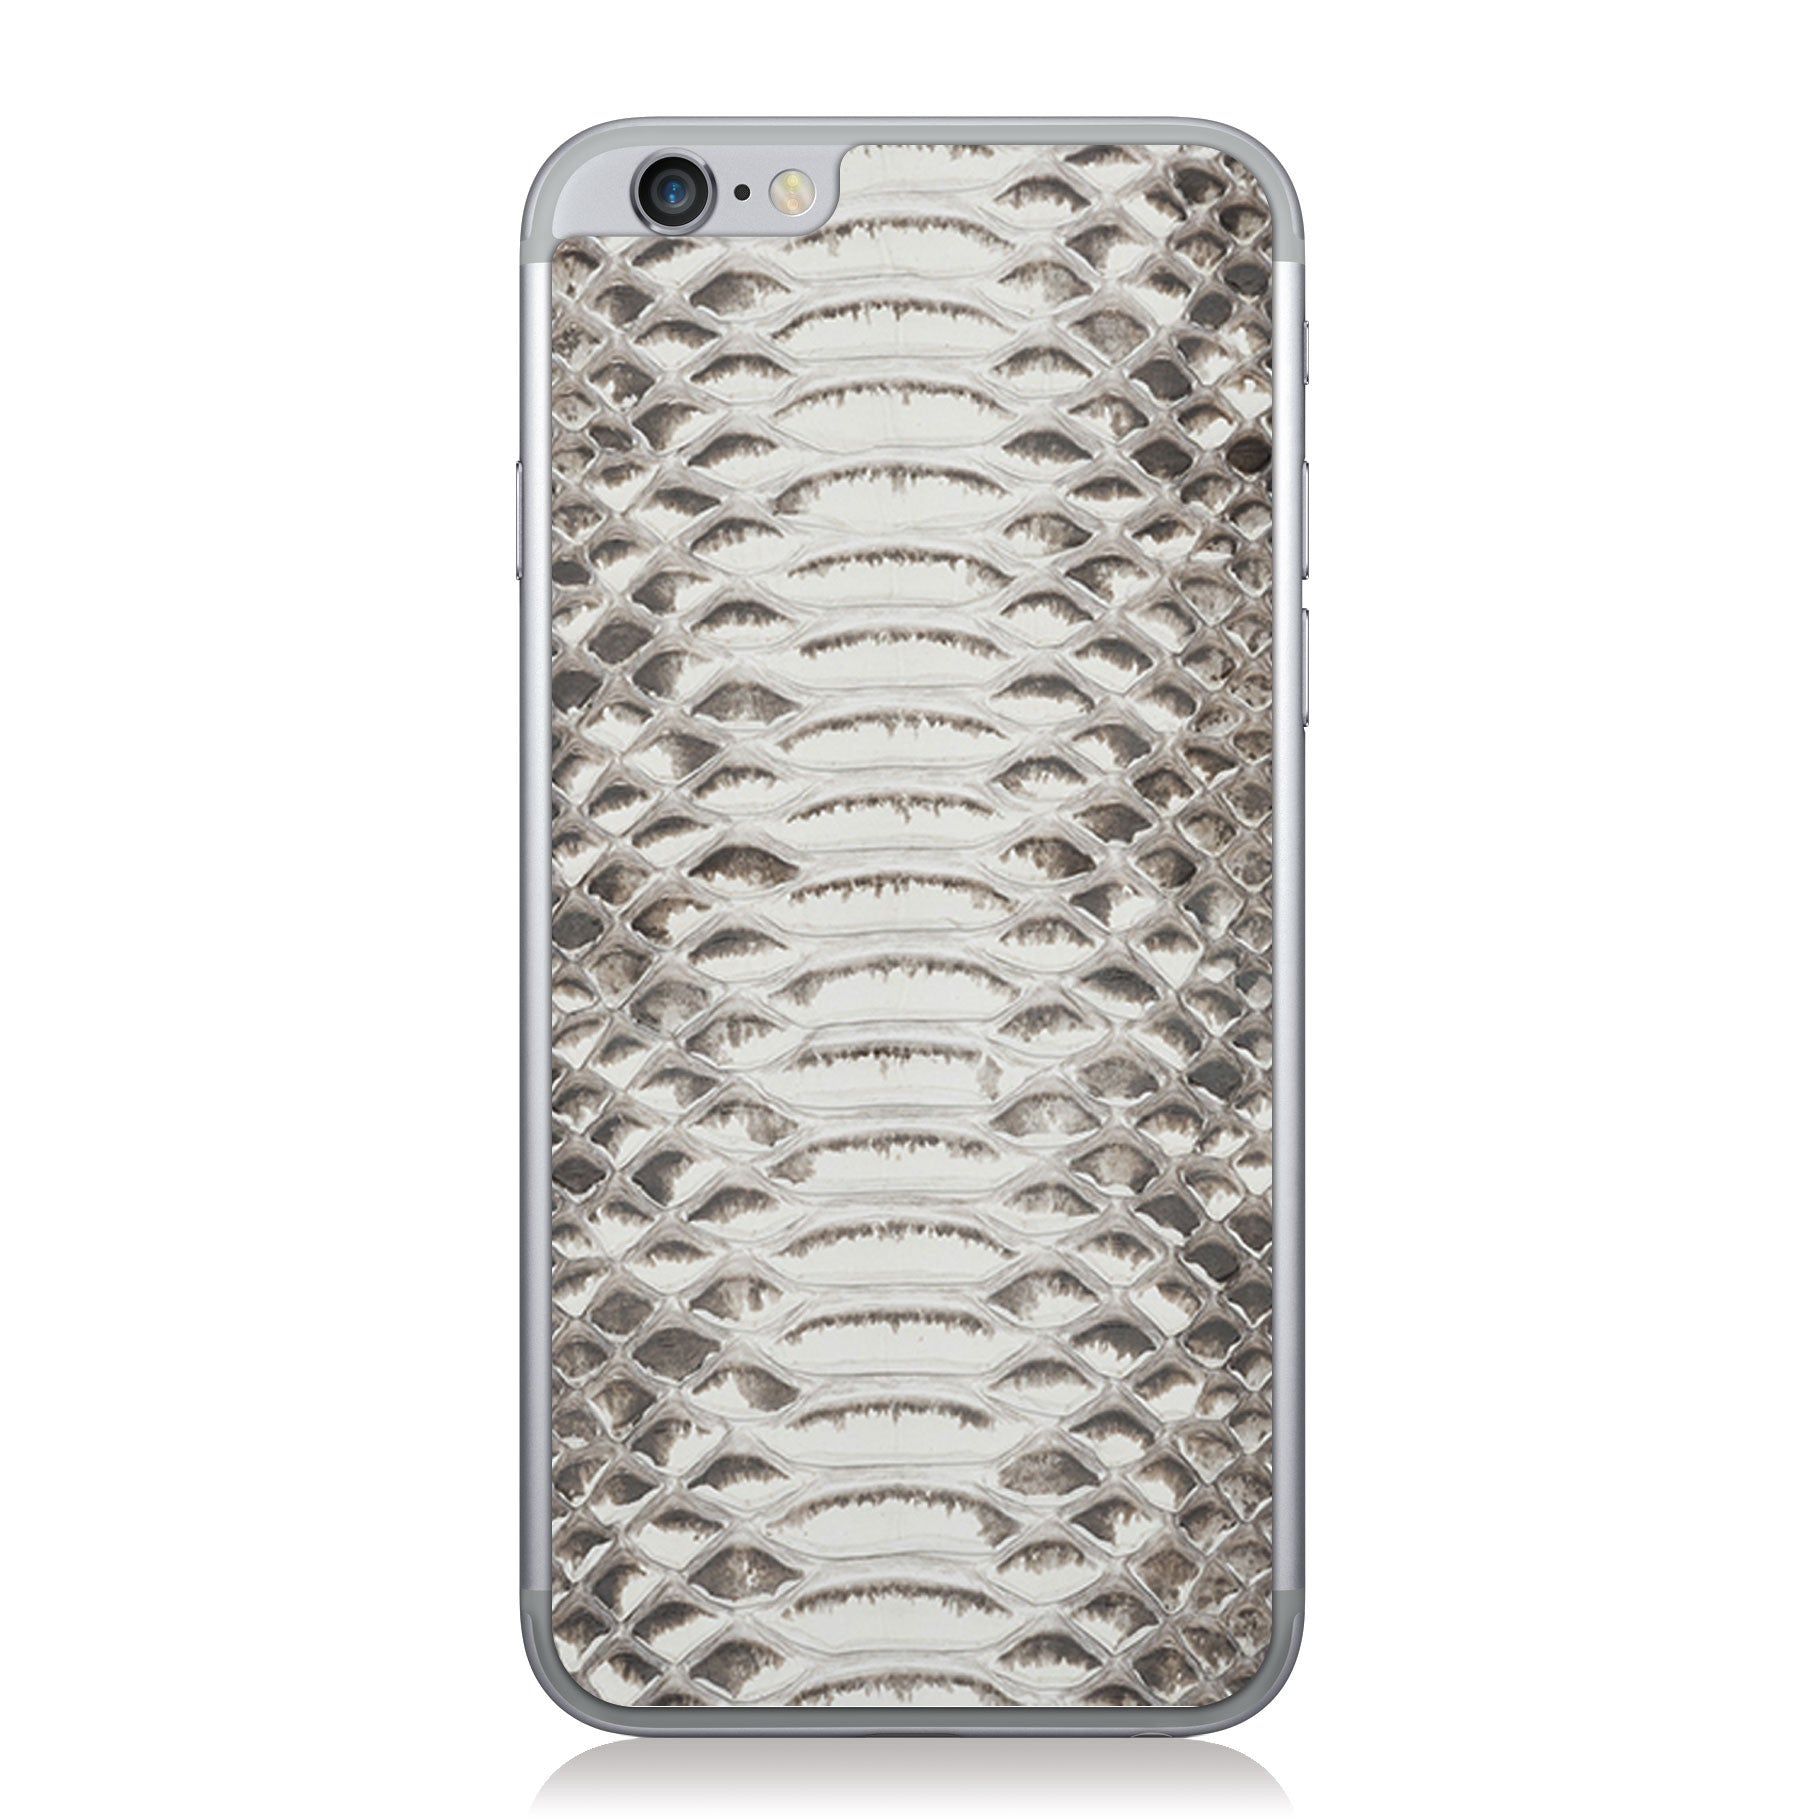 Python Skin iPhone 6/6s Leather Skin